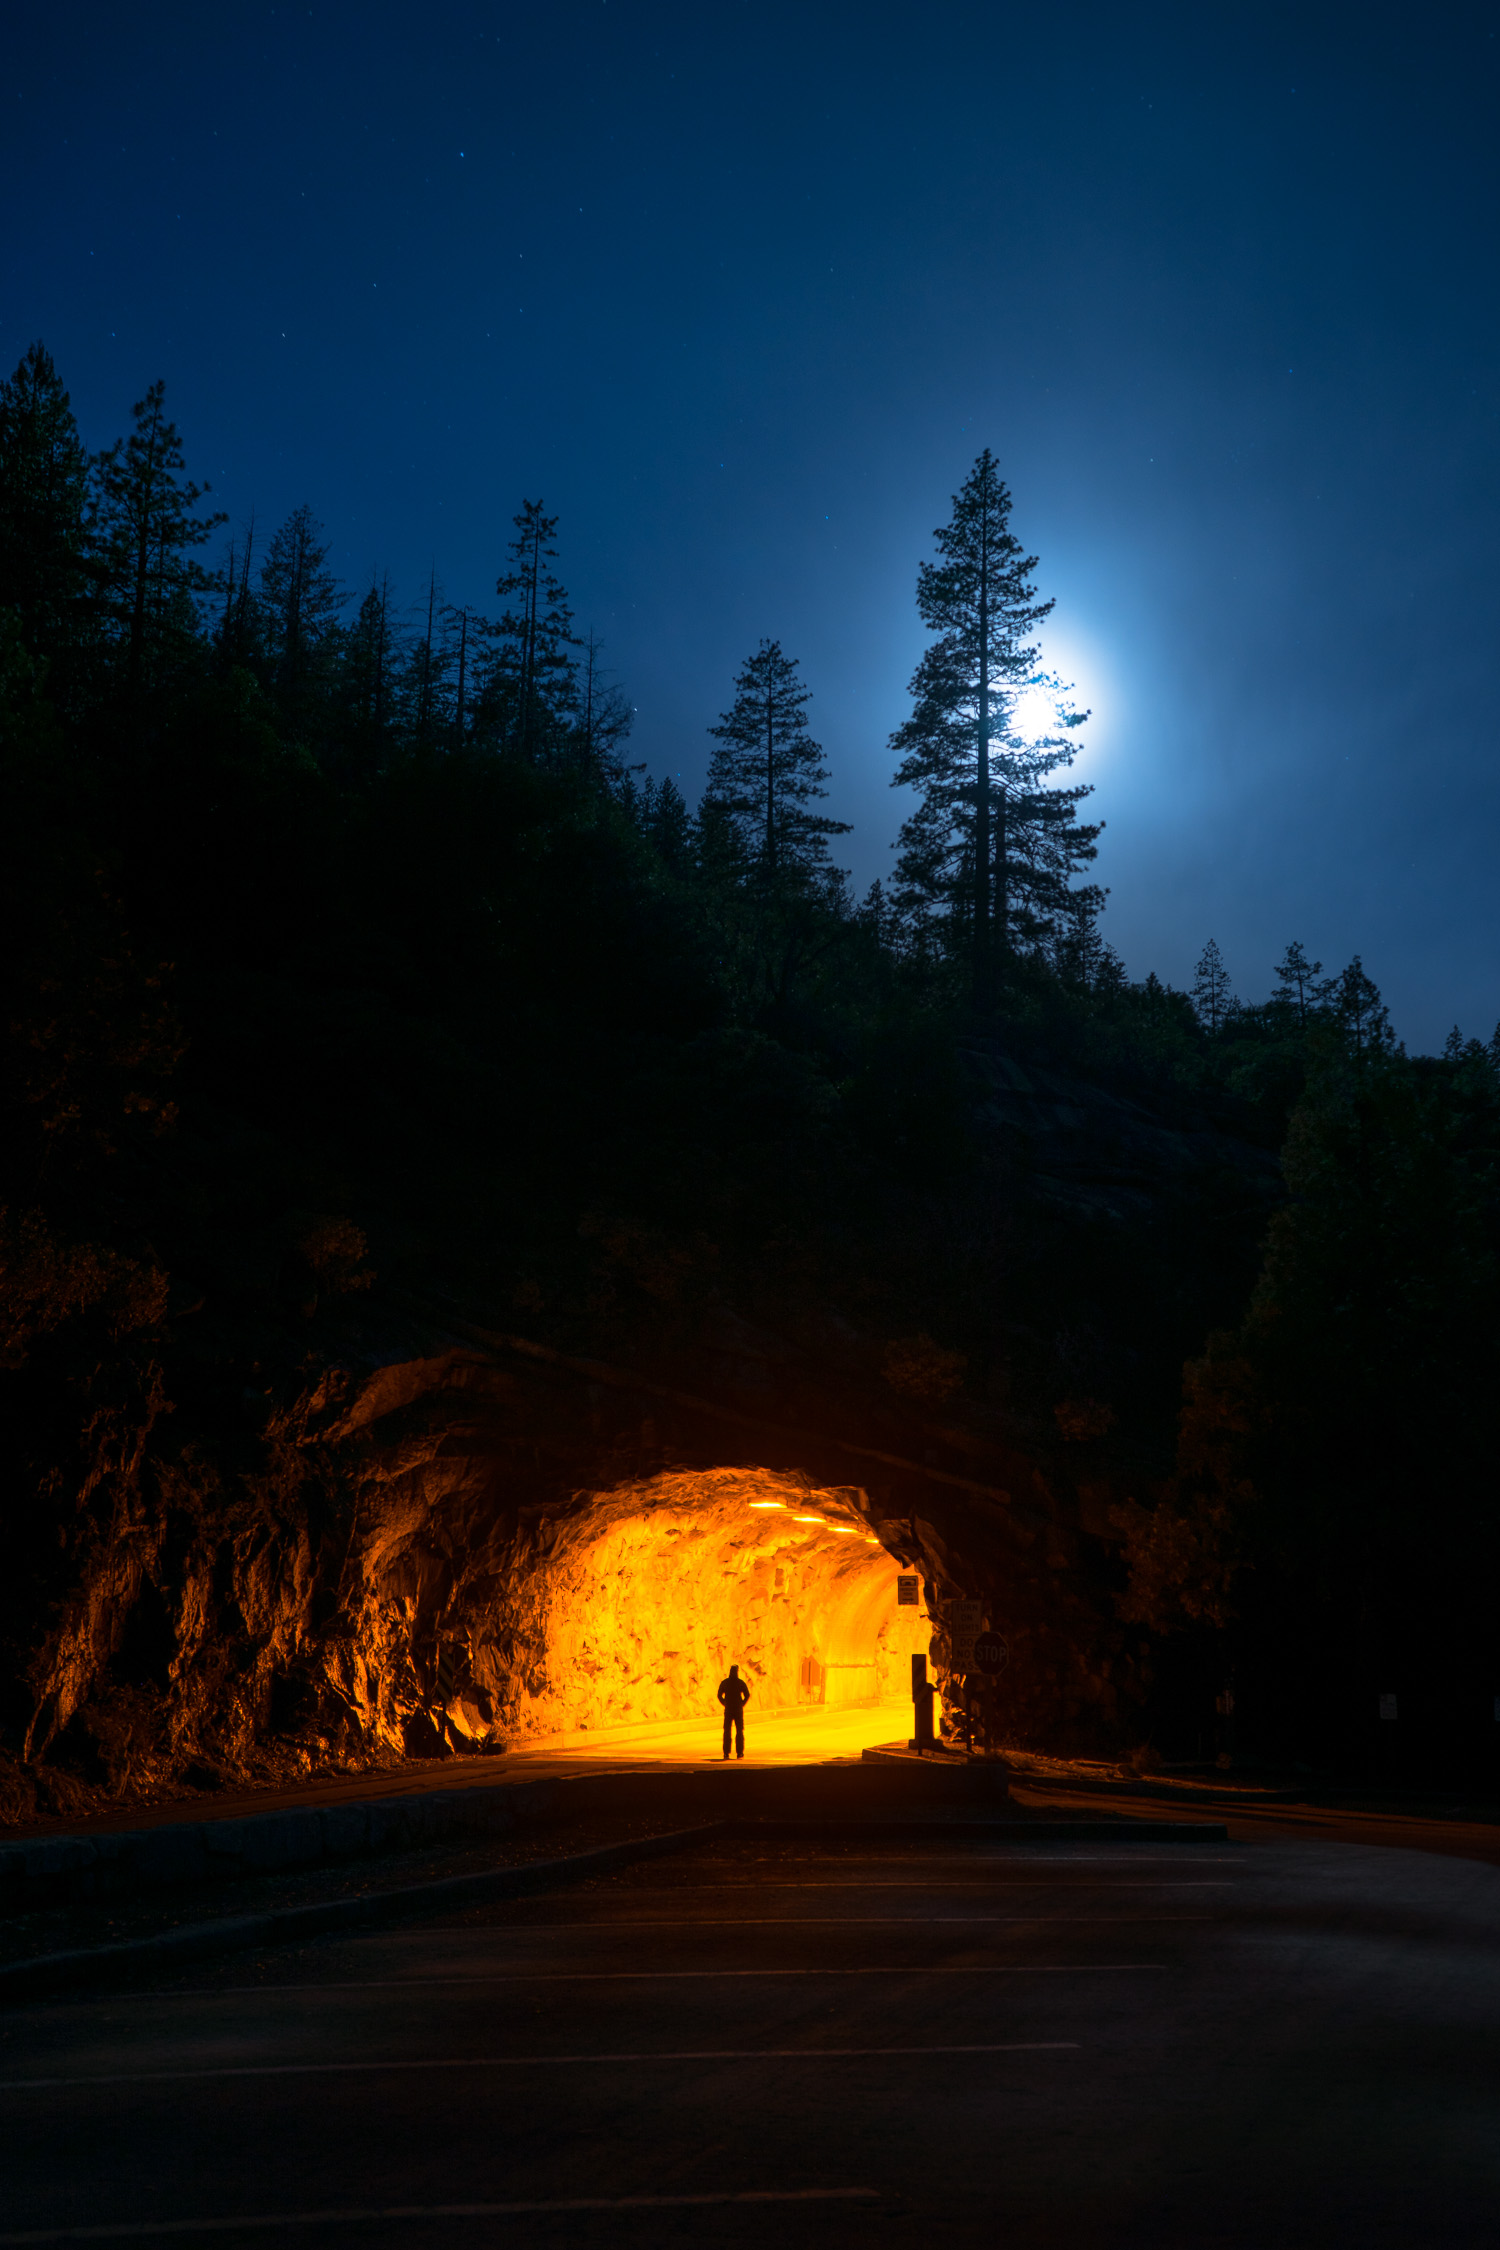 Essential Night Landscape Photography Tips from Chris Burkard ...